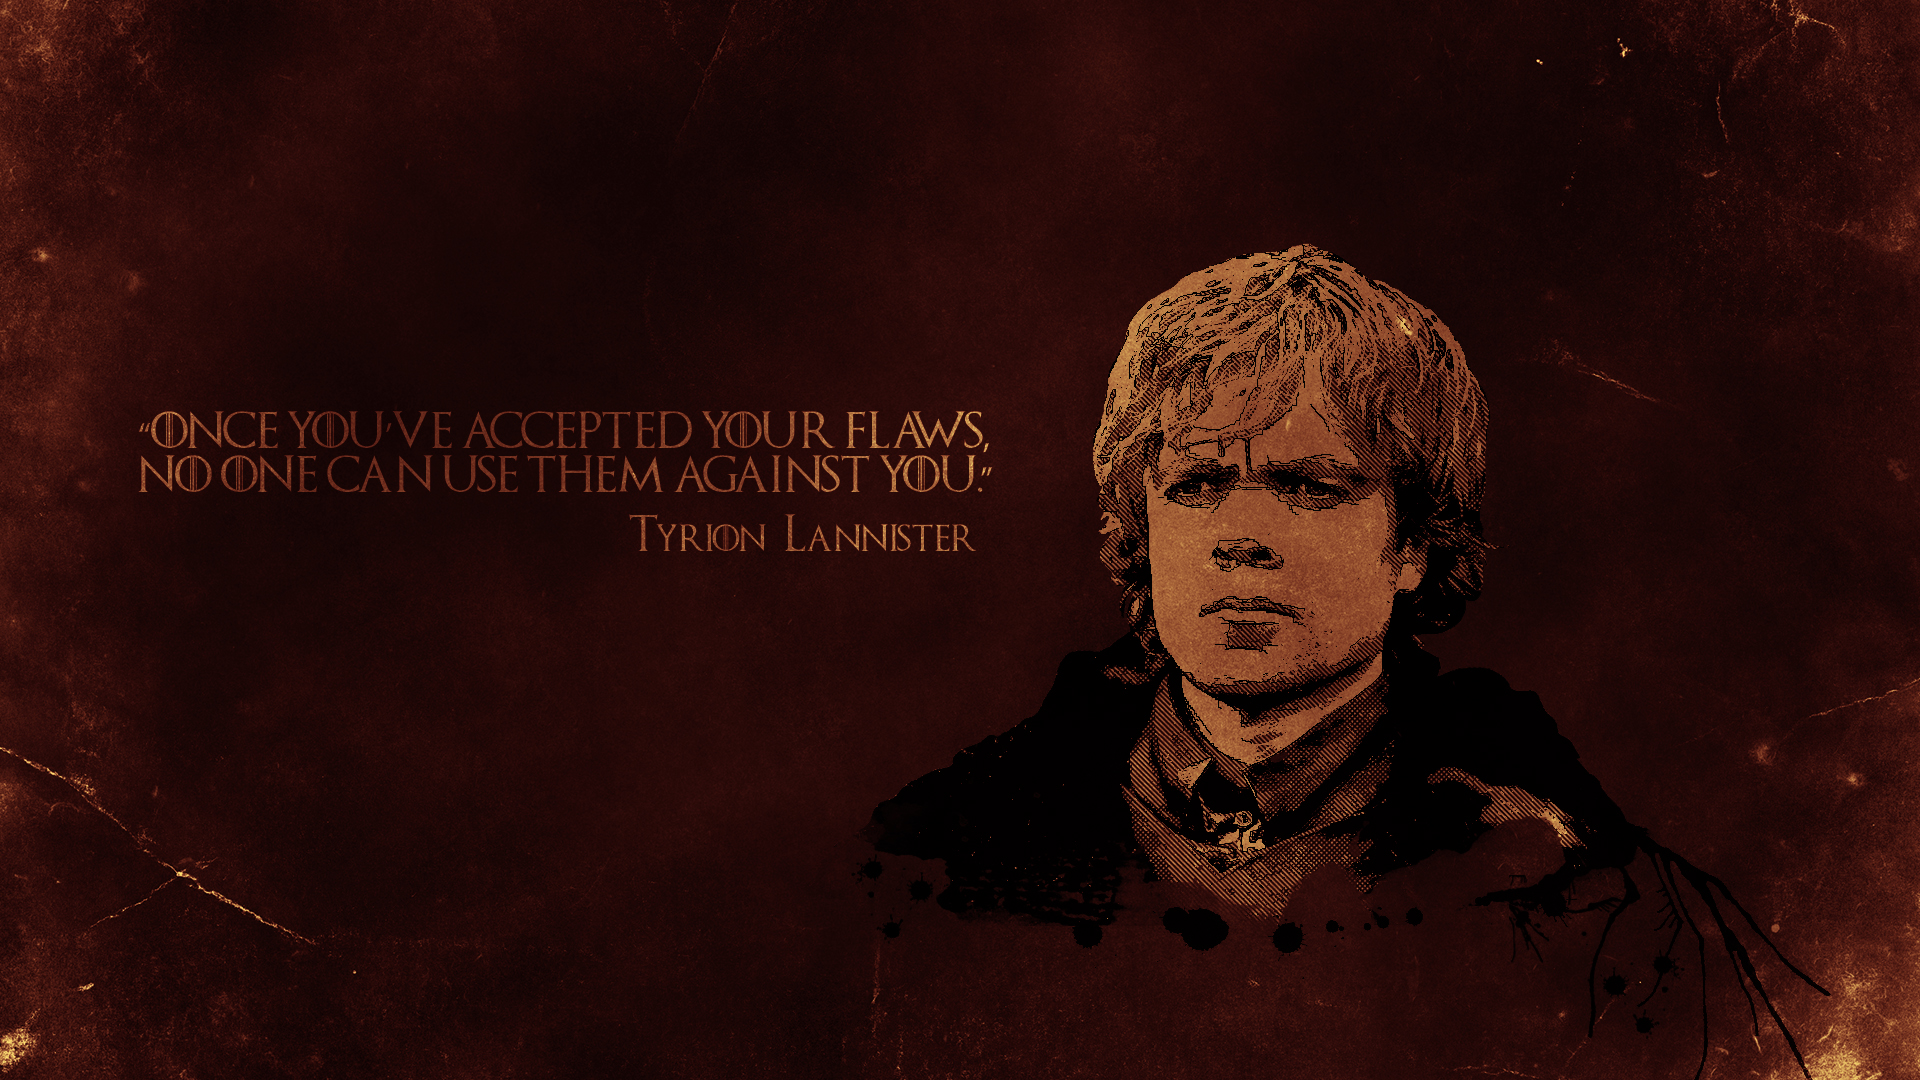 Tyrion lannister iphone wallpaper